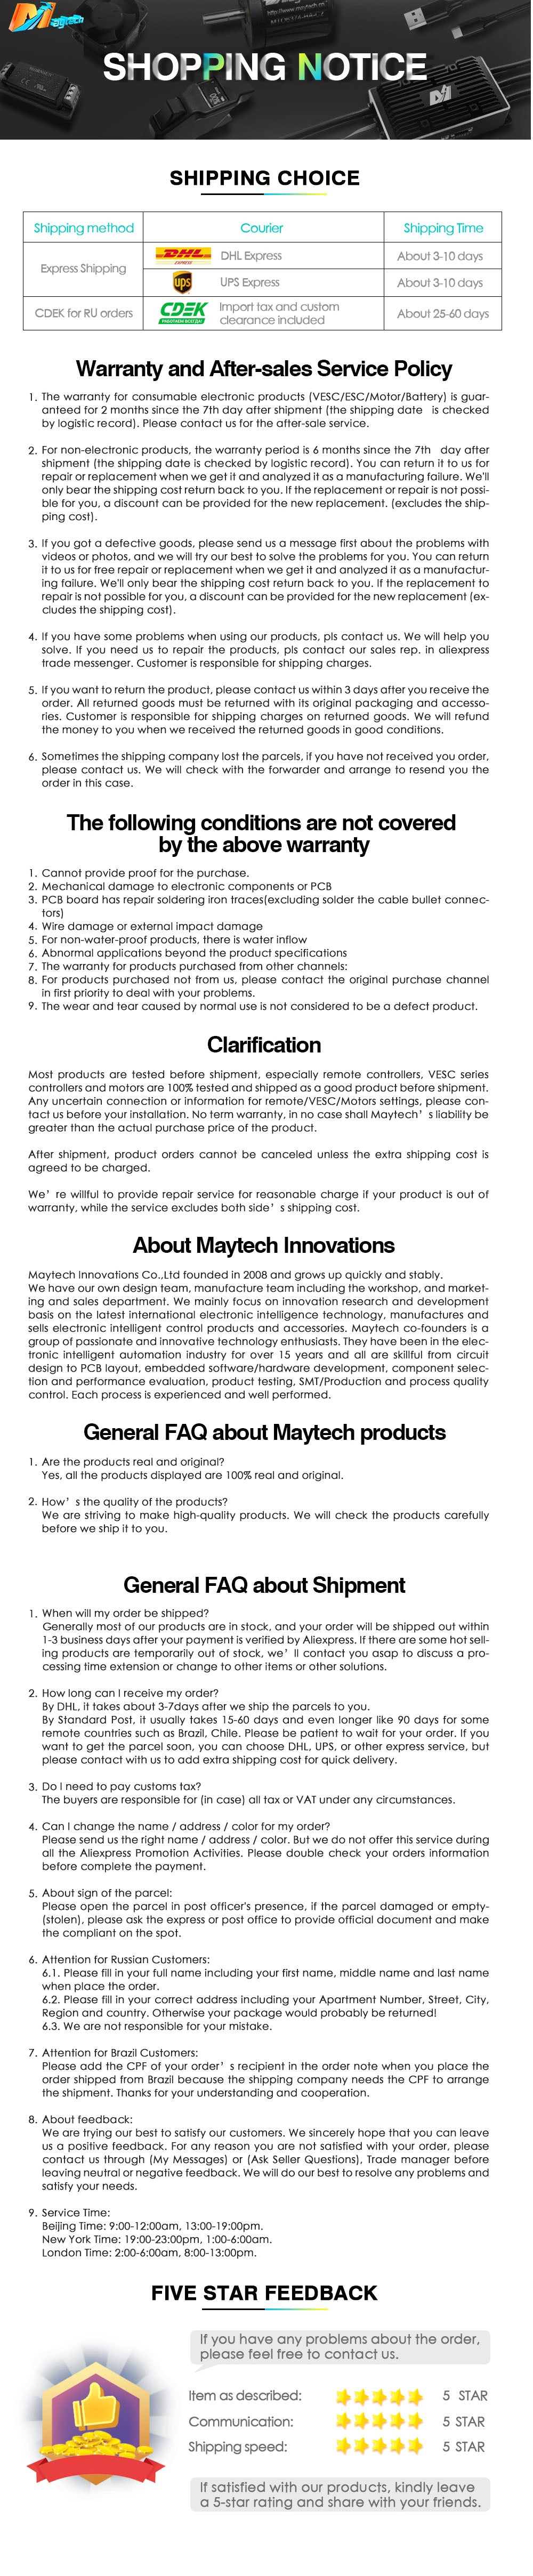 Maytech shipping and warranty